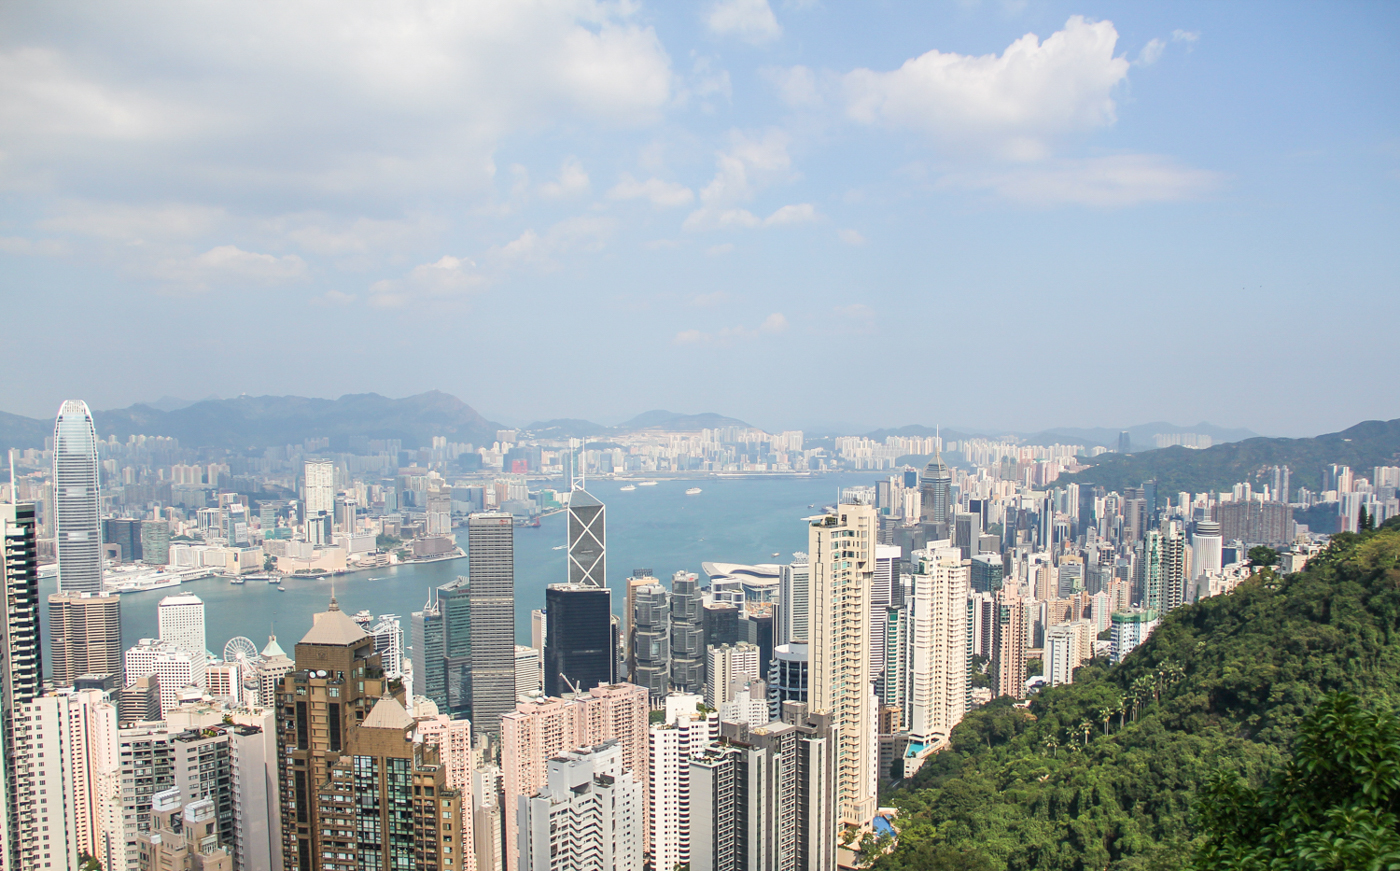 Victoria Peak - a breathtaking vista point on Hong Kong Island. Photo by DY